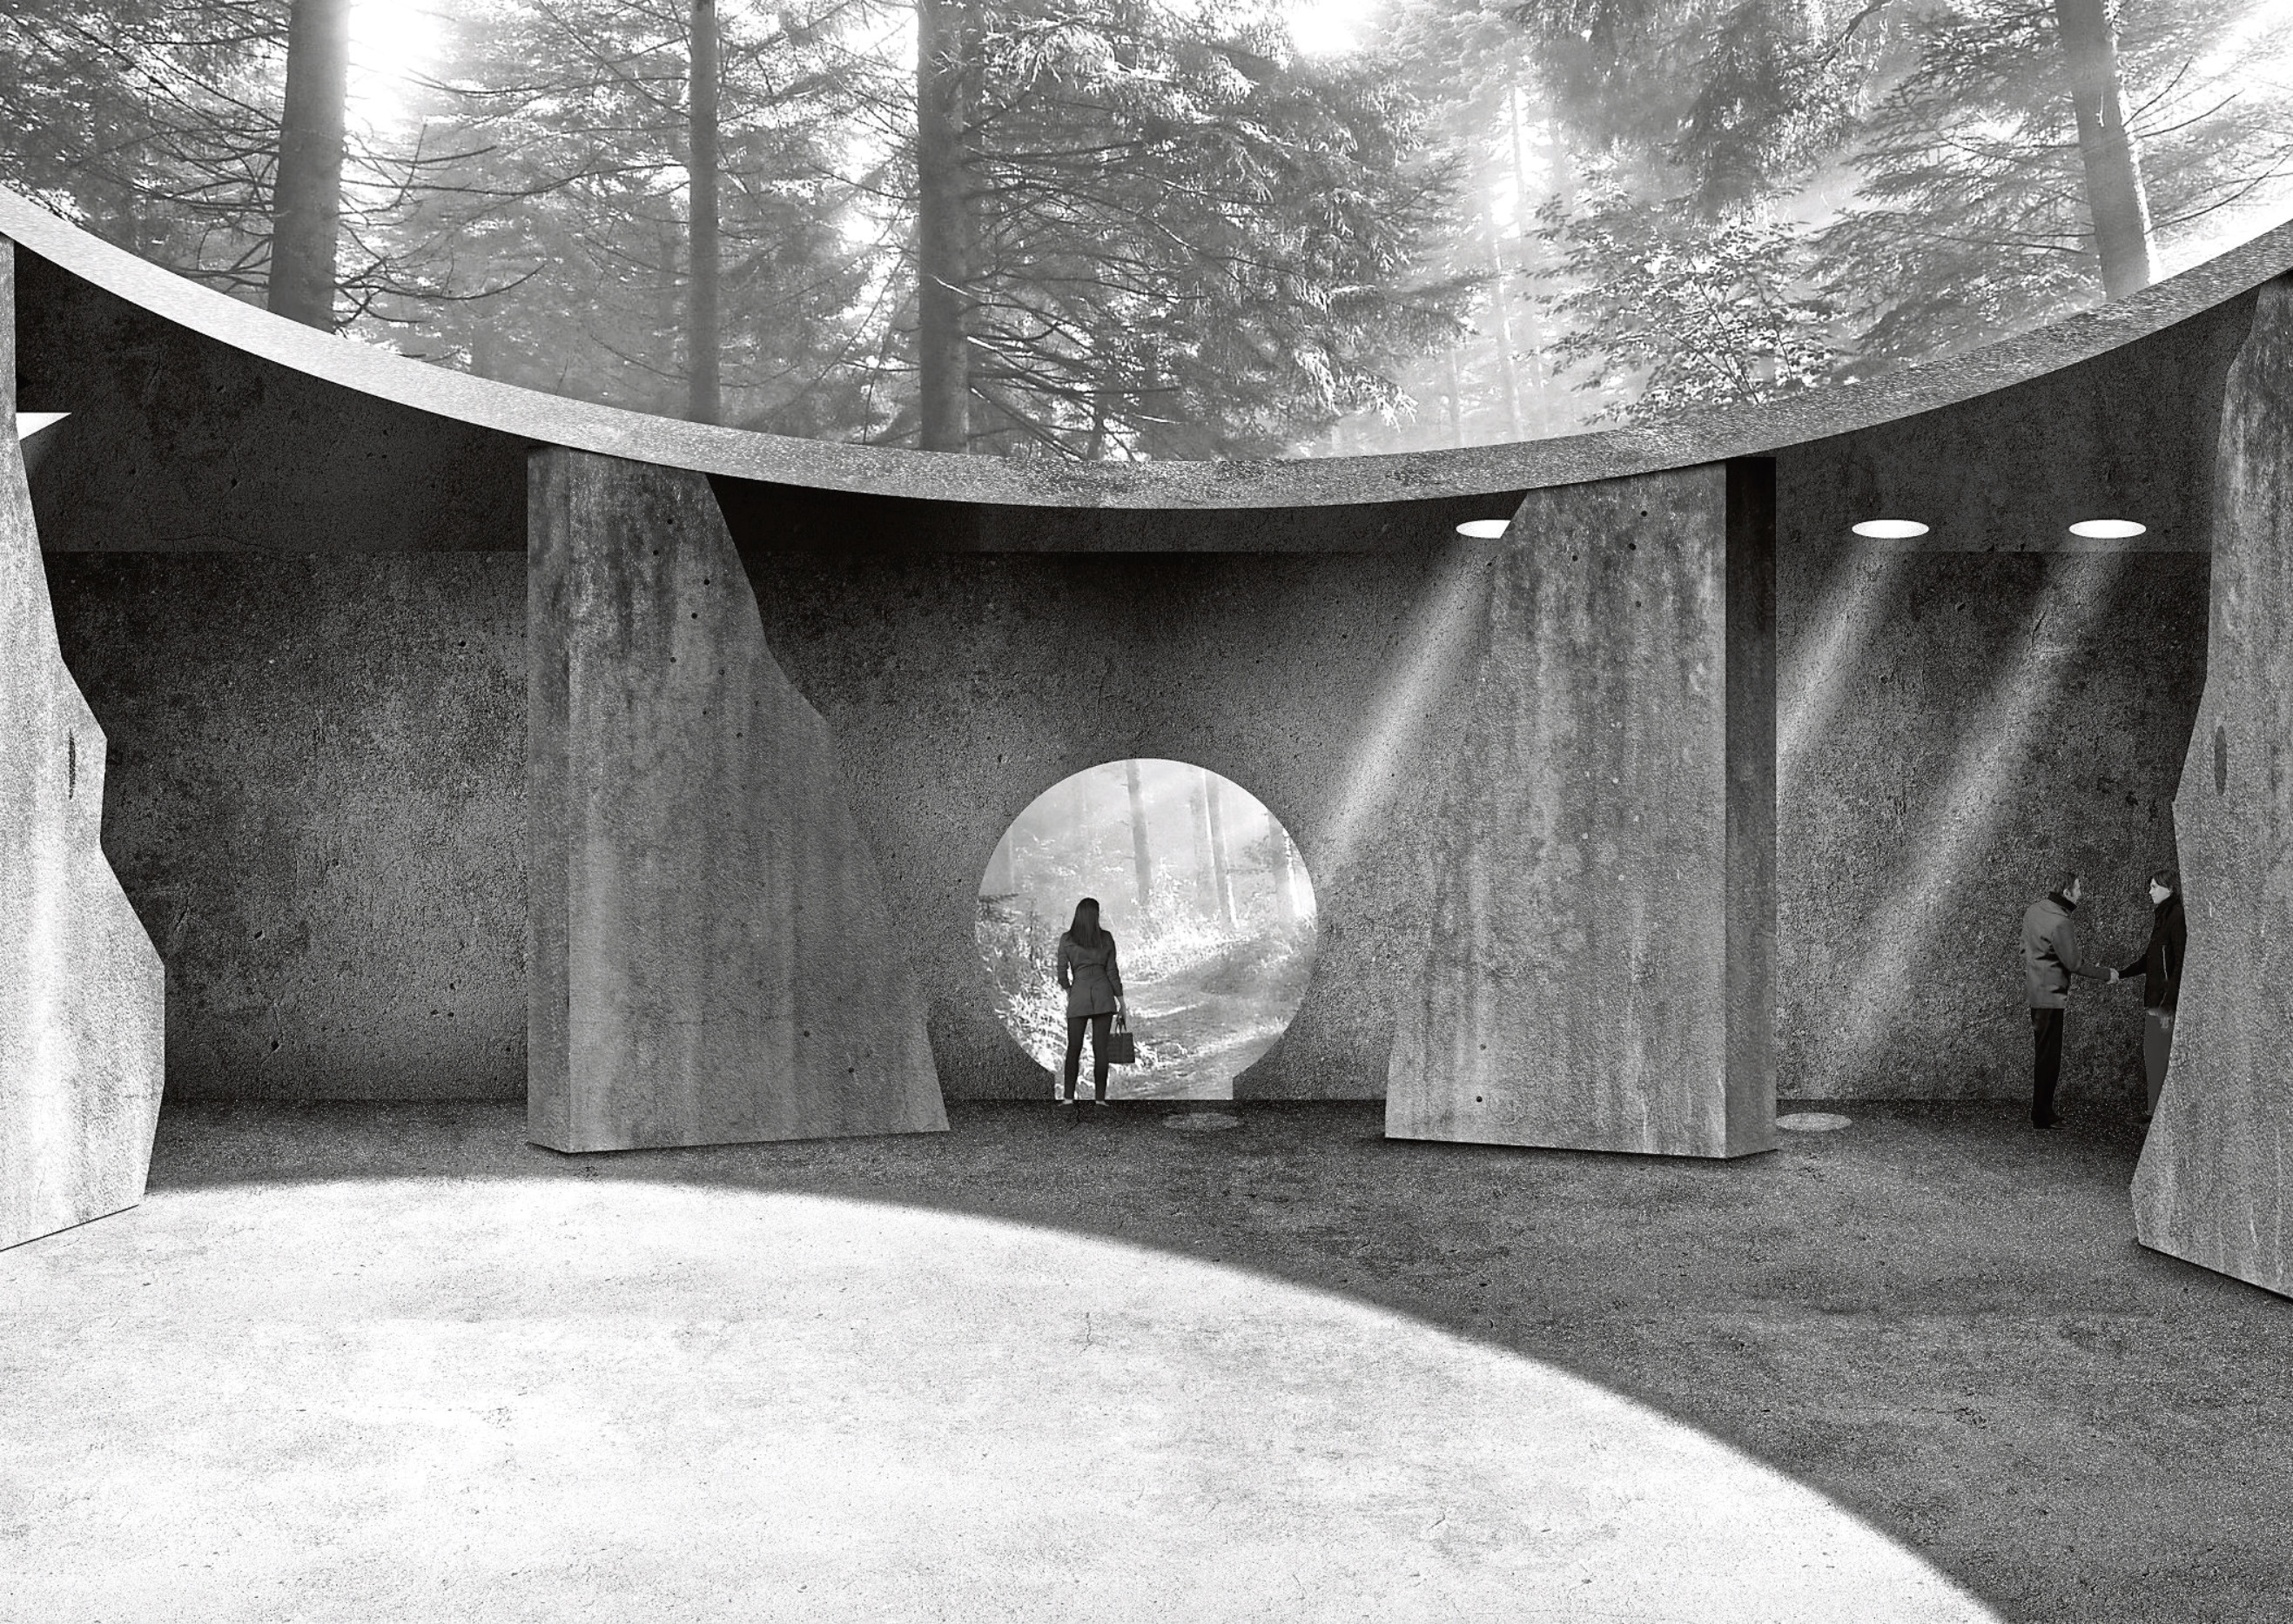 Sophie Perrott, who is in her final year of studies at RGU, has designed a resomation complex and memorial gardens which would be located on Craigingles Hill and woodland in Maryculter.